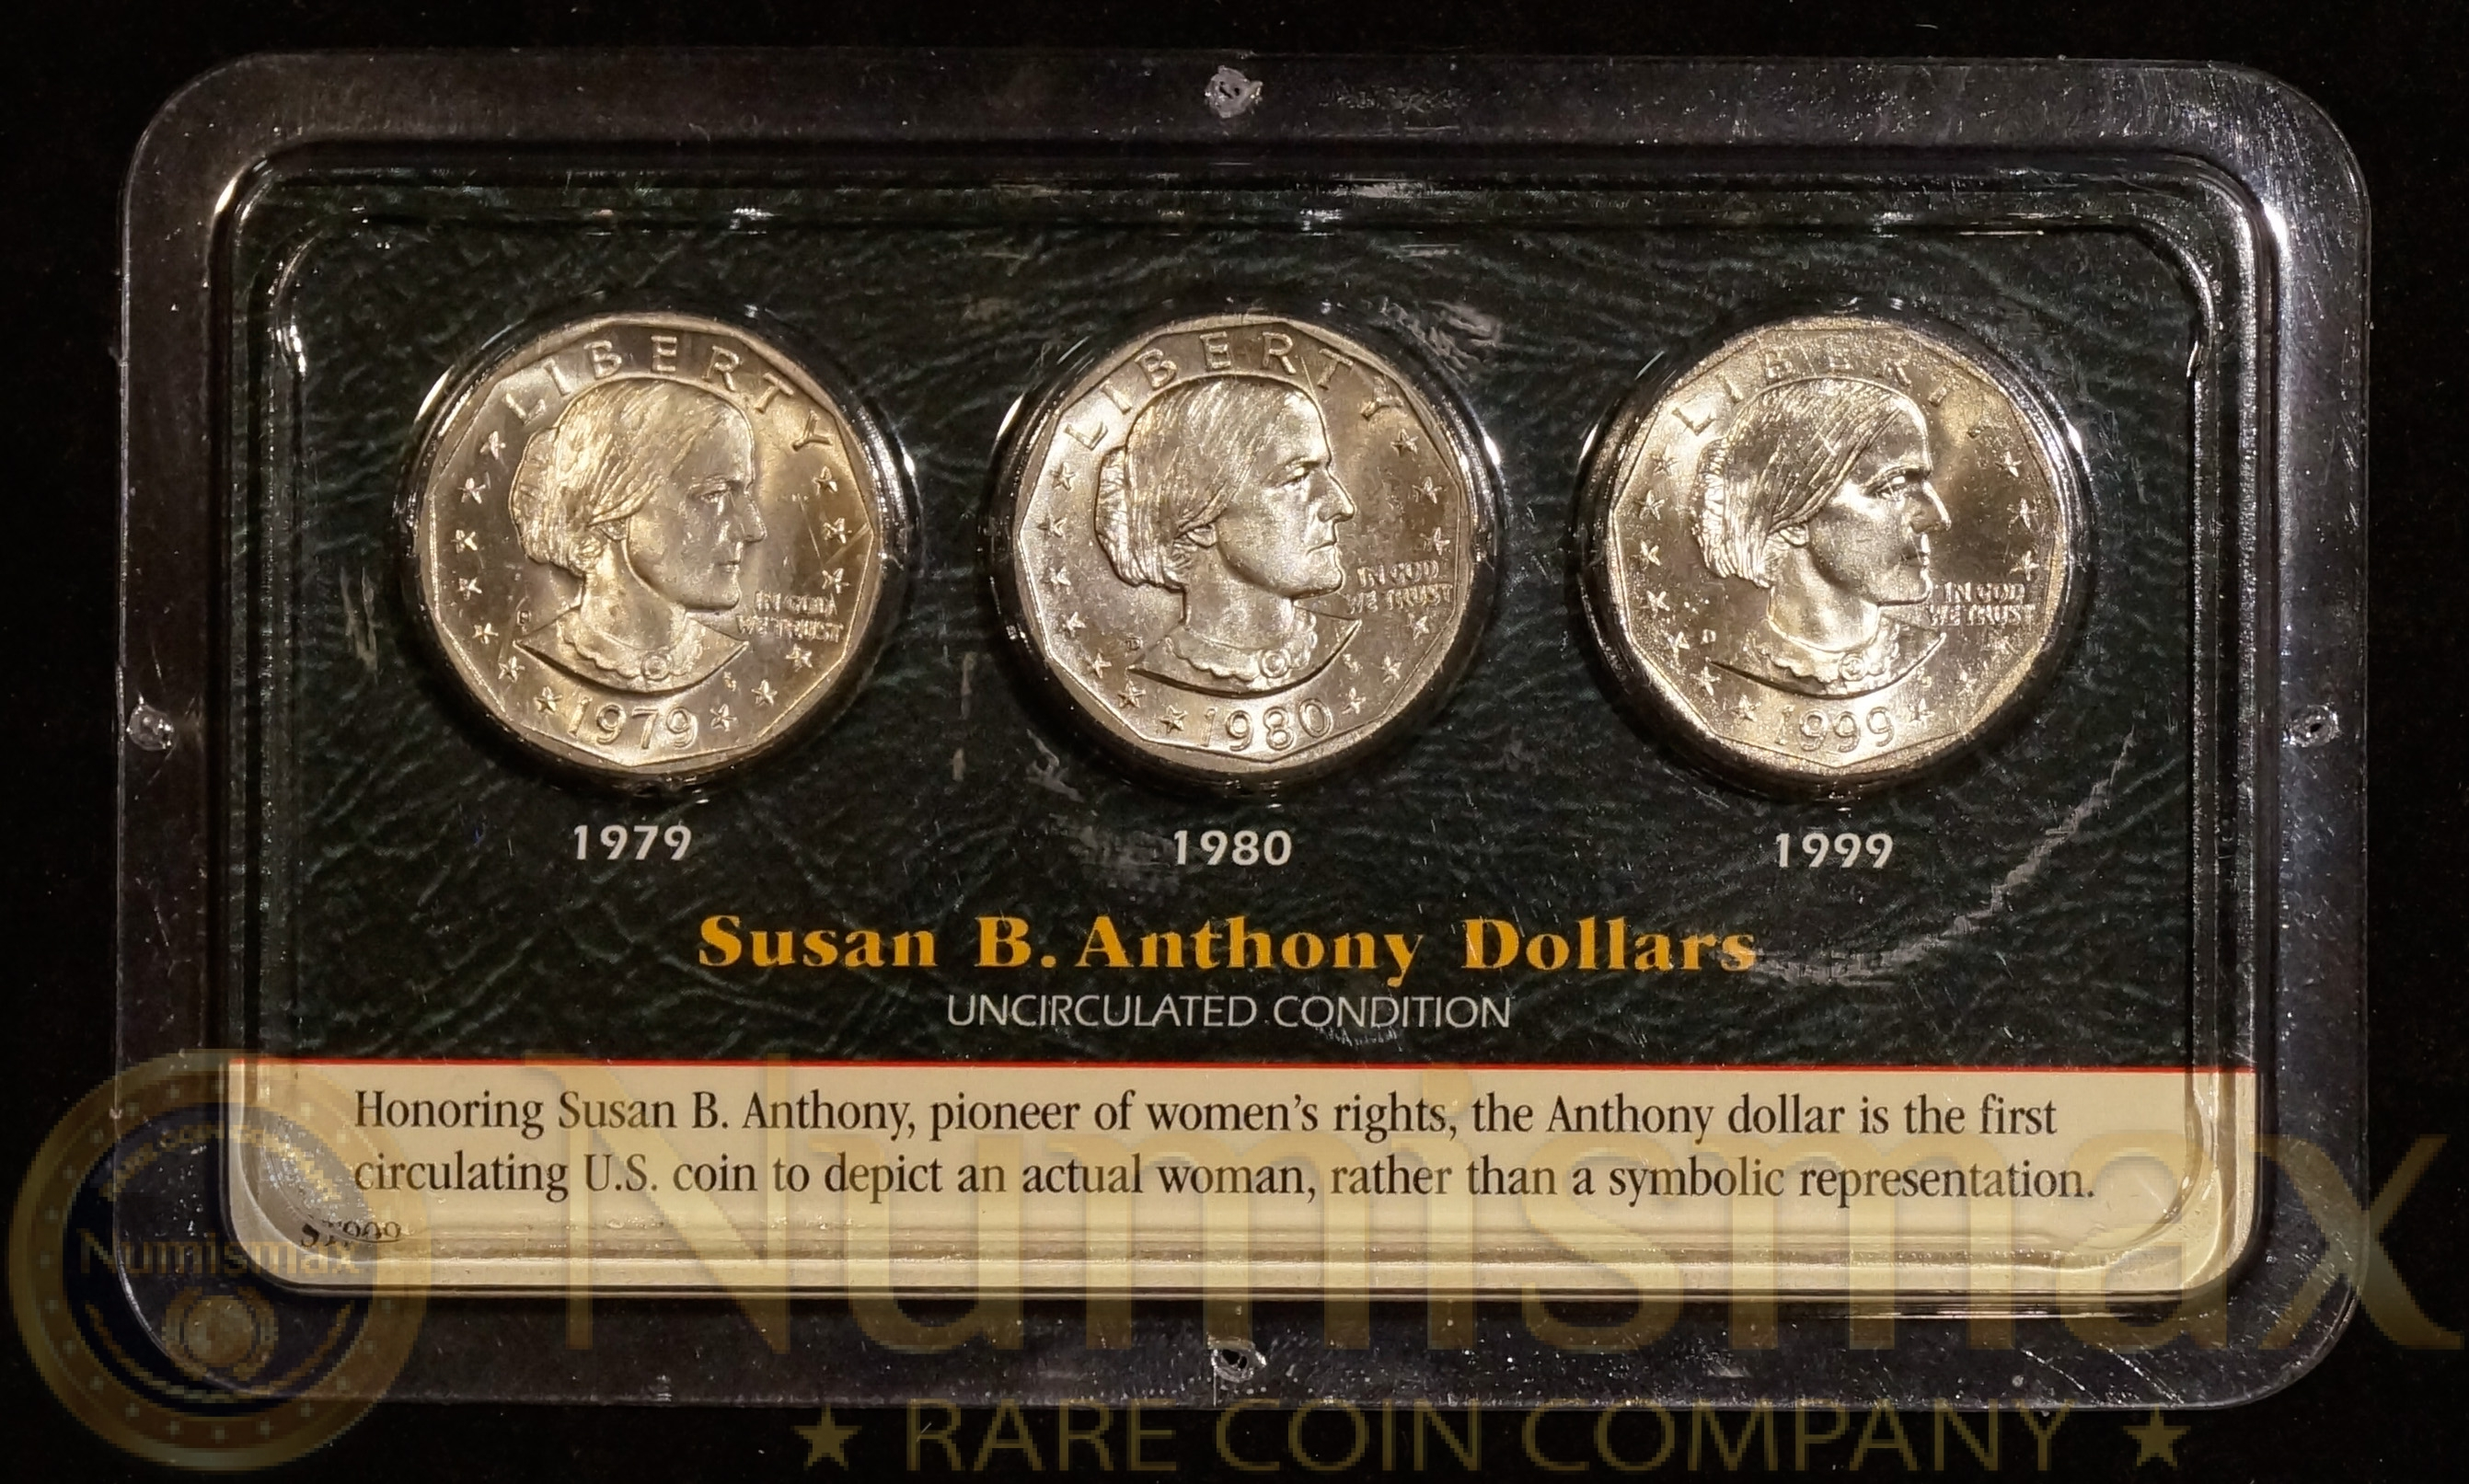 1979 S, 1980 D, 1999 D Susan B  Anthony Dollar Set | 3-Coin Set